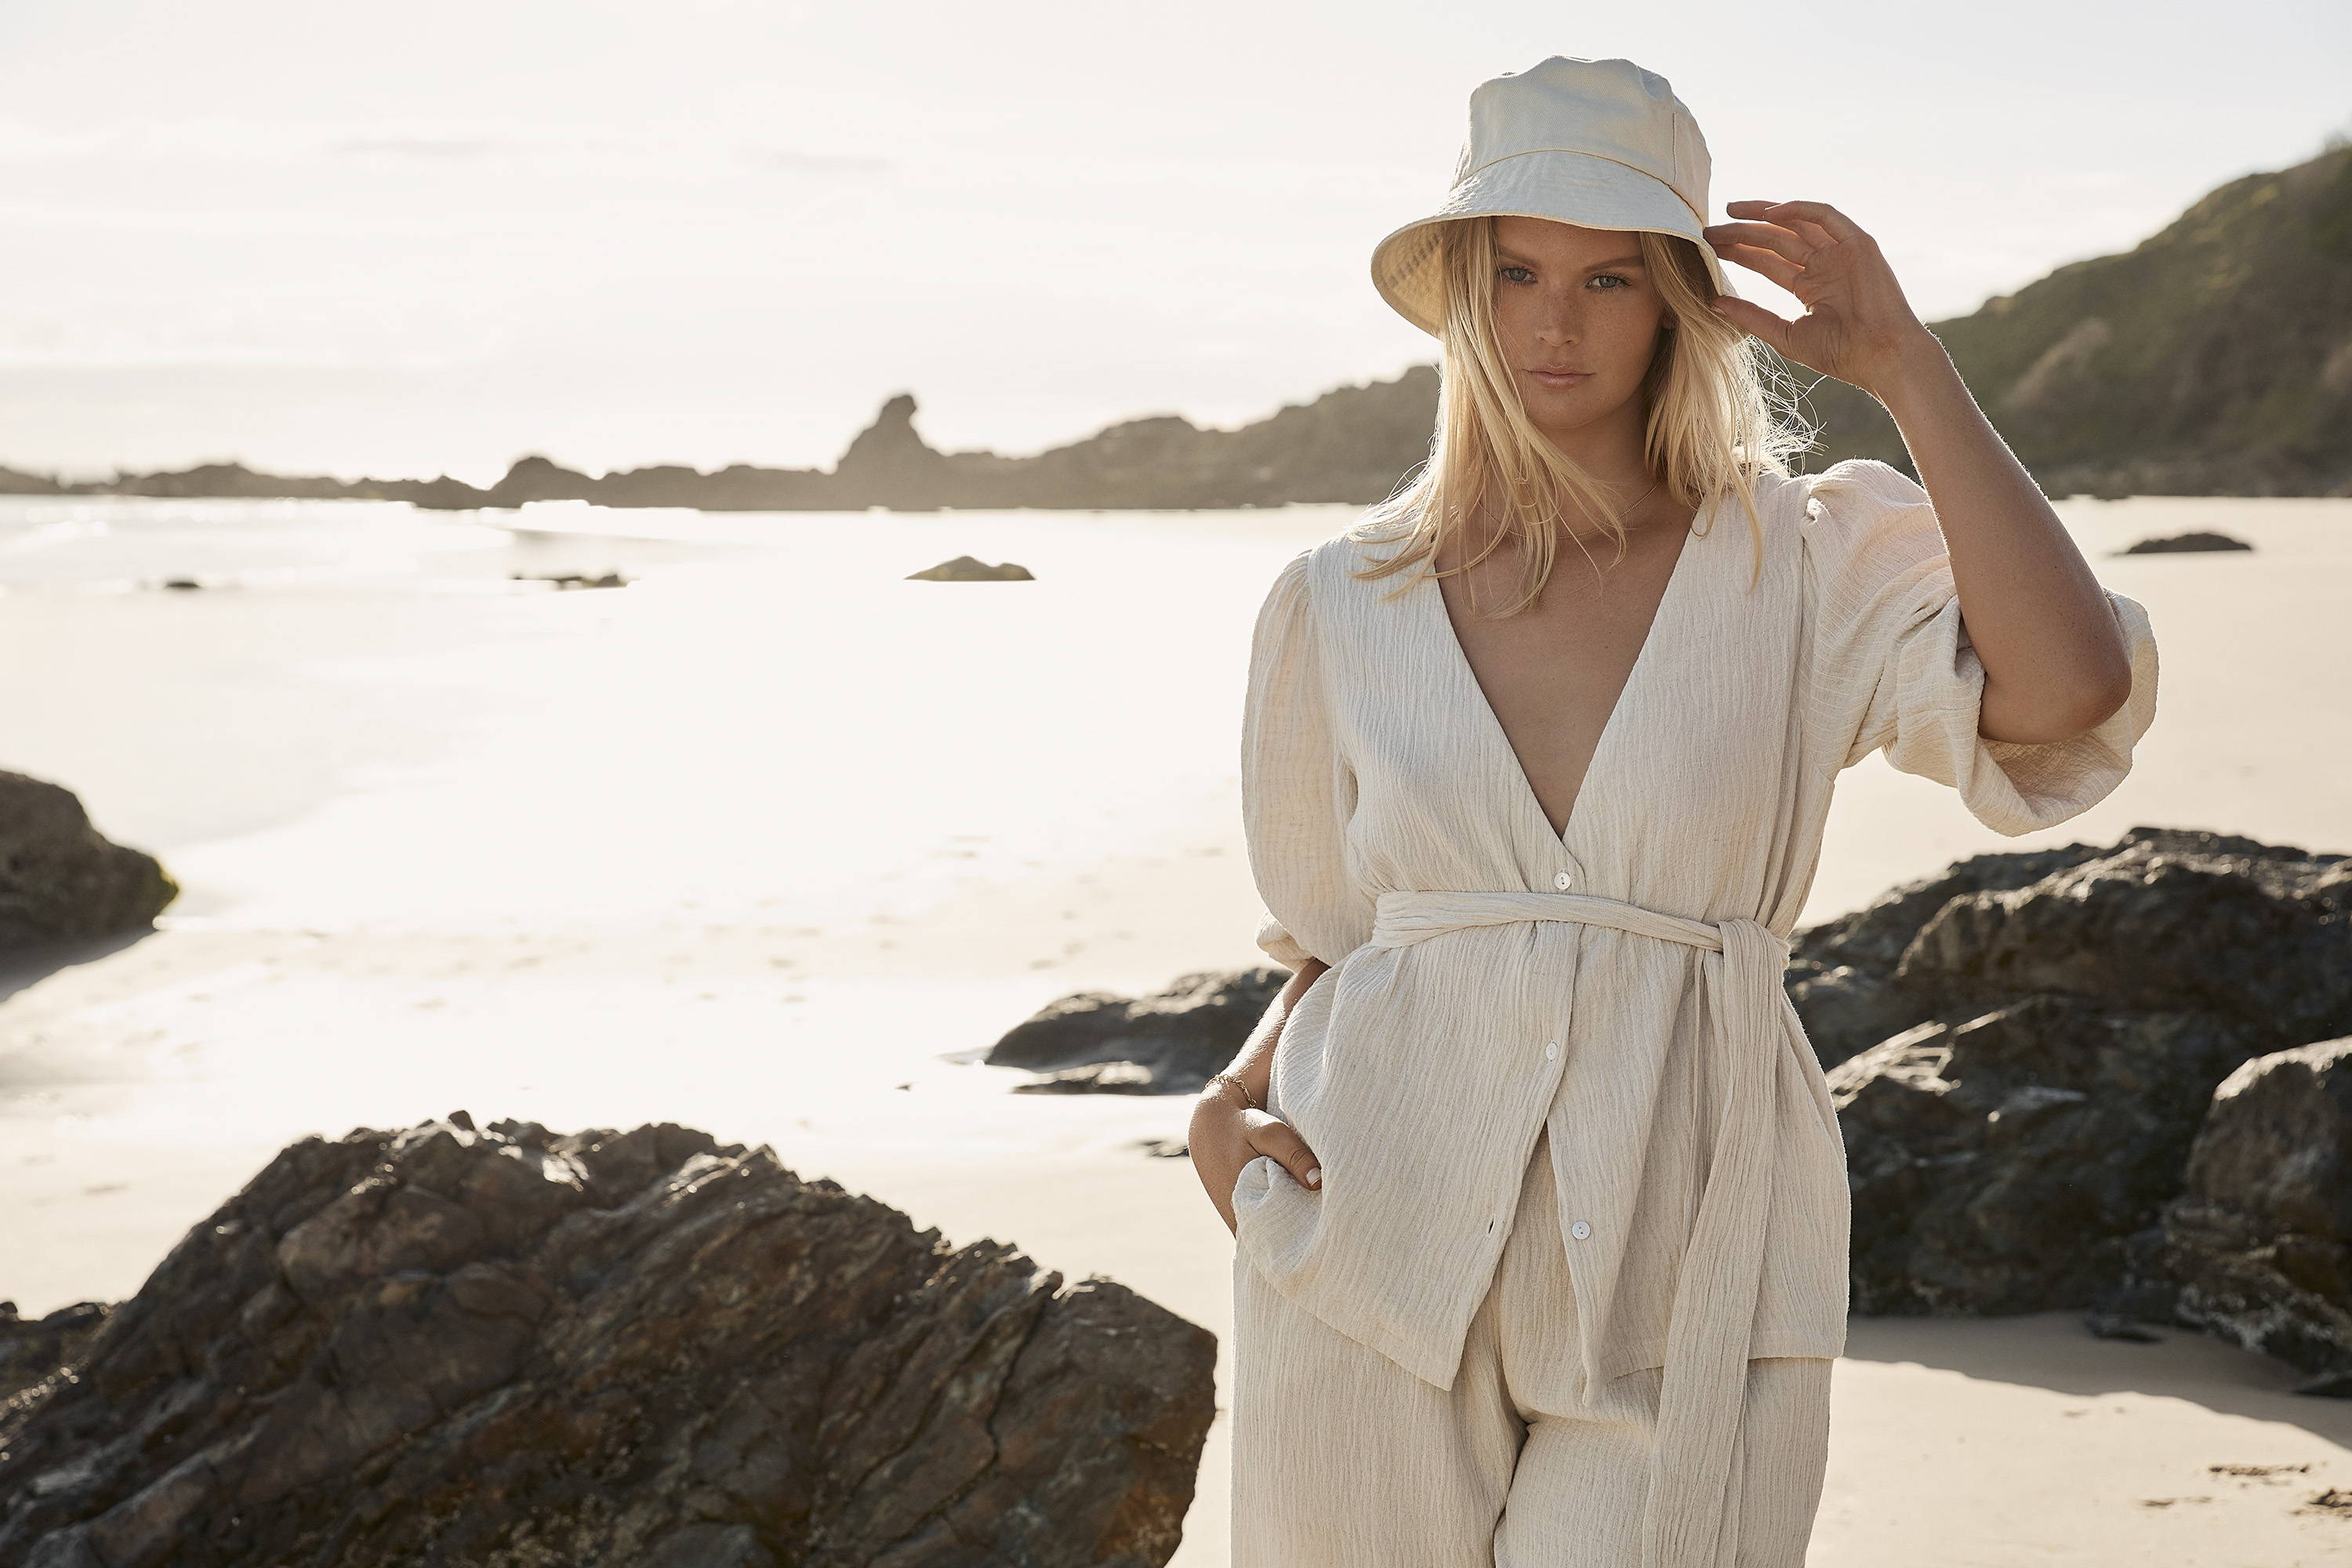 beautiful blonde woman not smiling touching hat wearing loose natural linen top and pants with a tie at waist sand and rocks in background